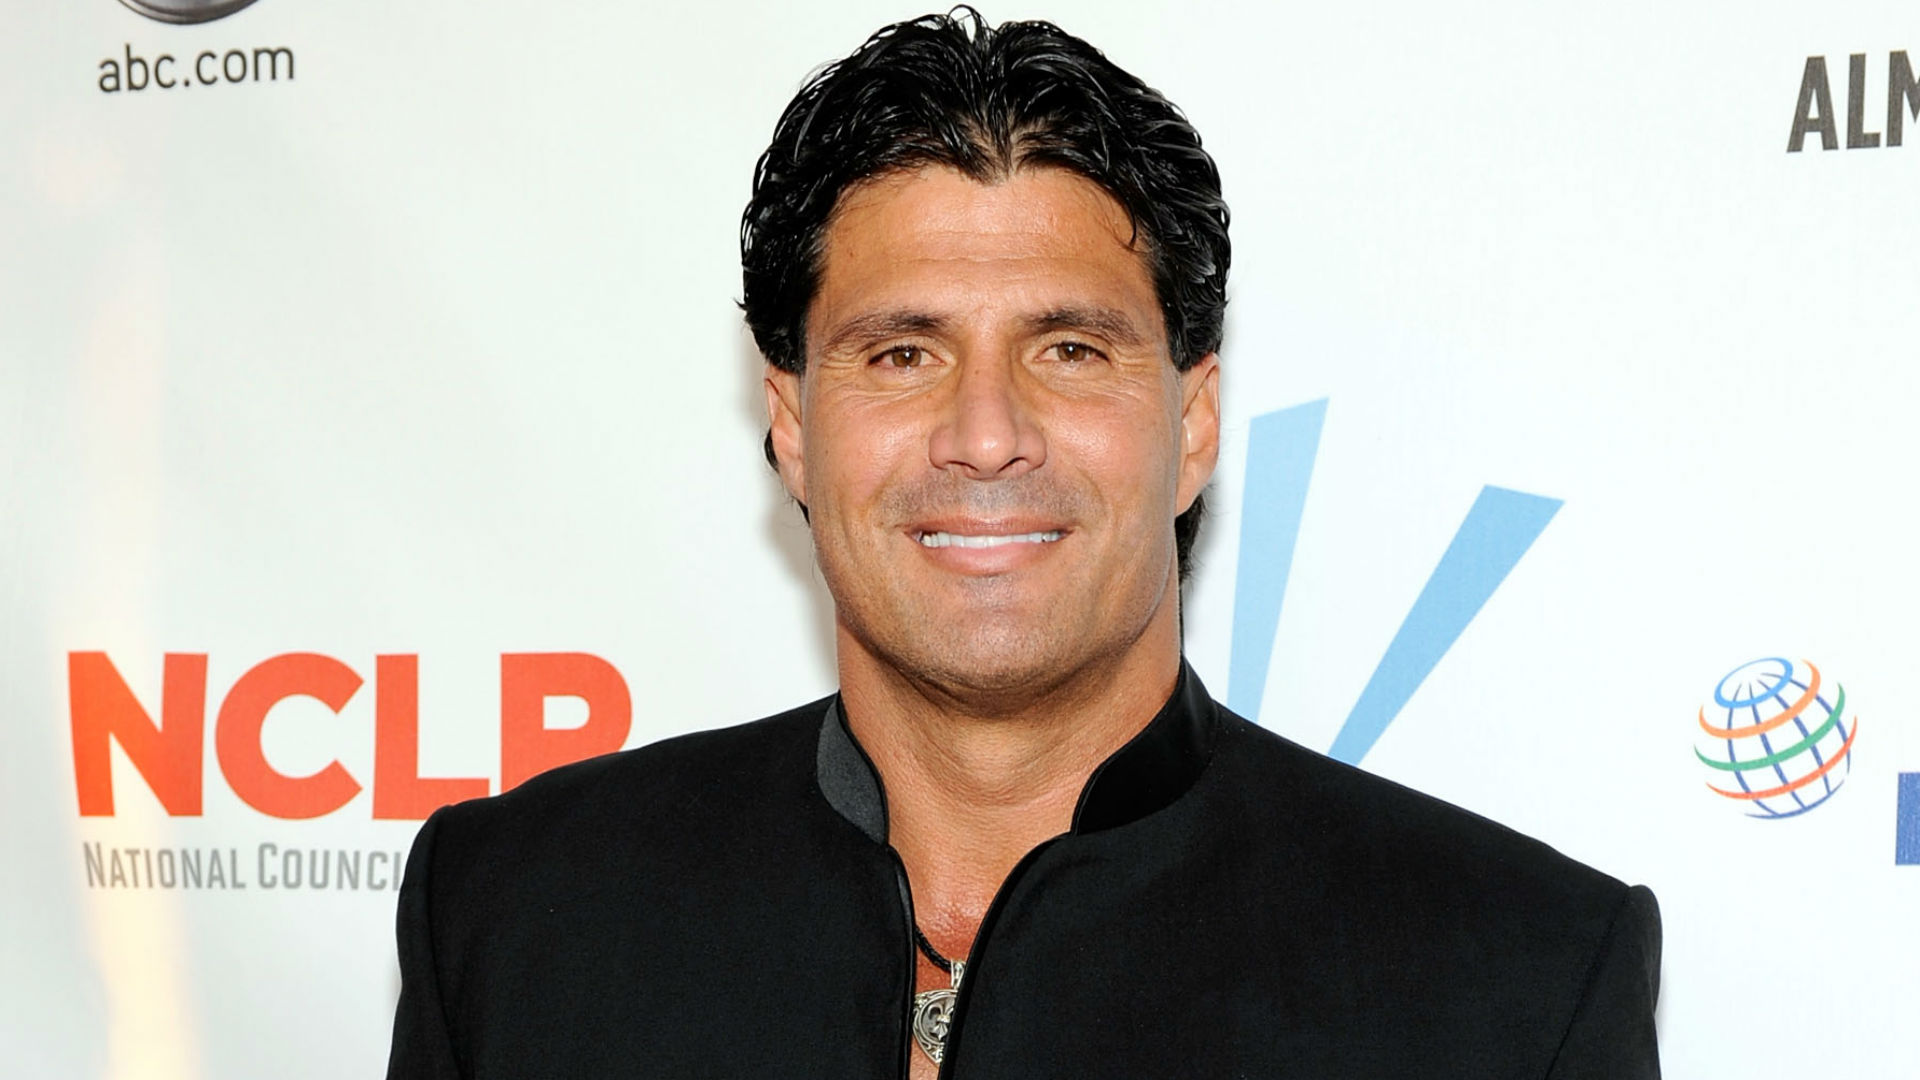 Jose Canseco will support Caitlyn Jenner by living as a woman